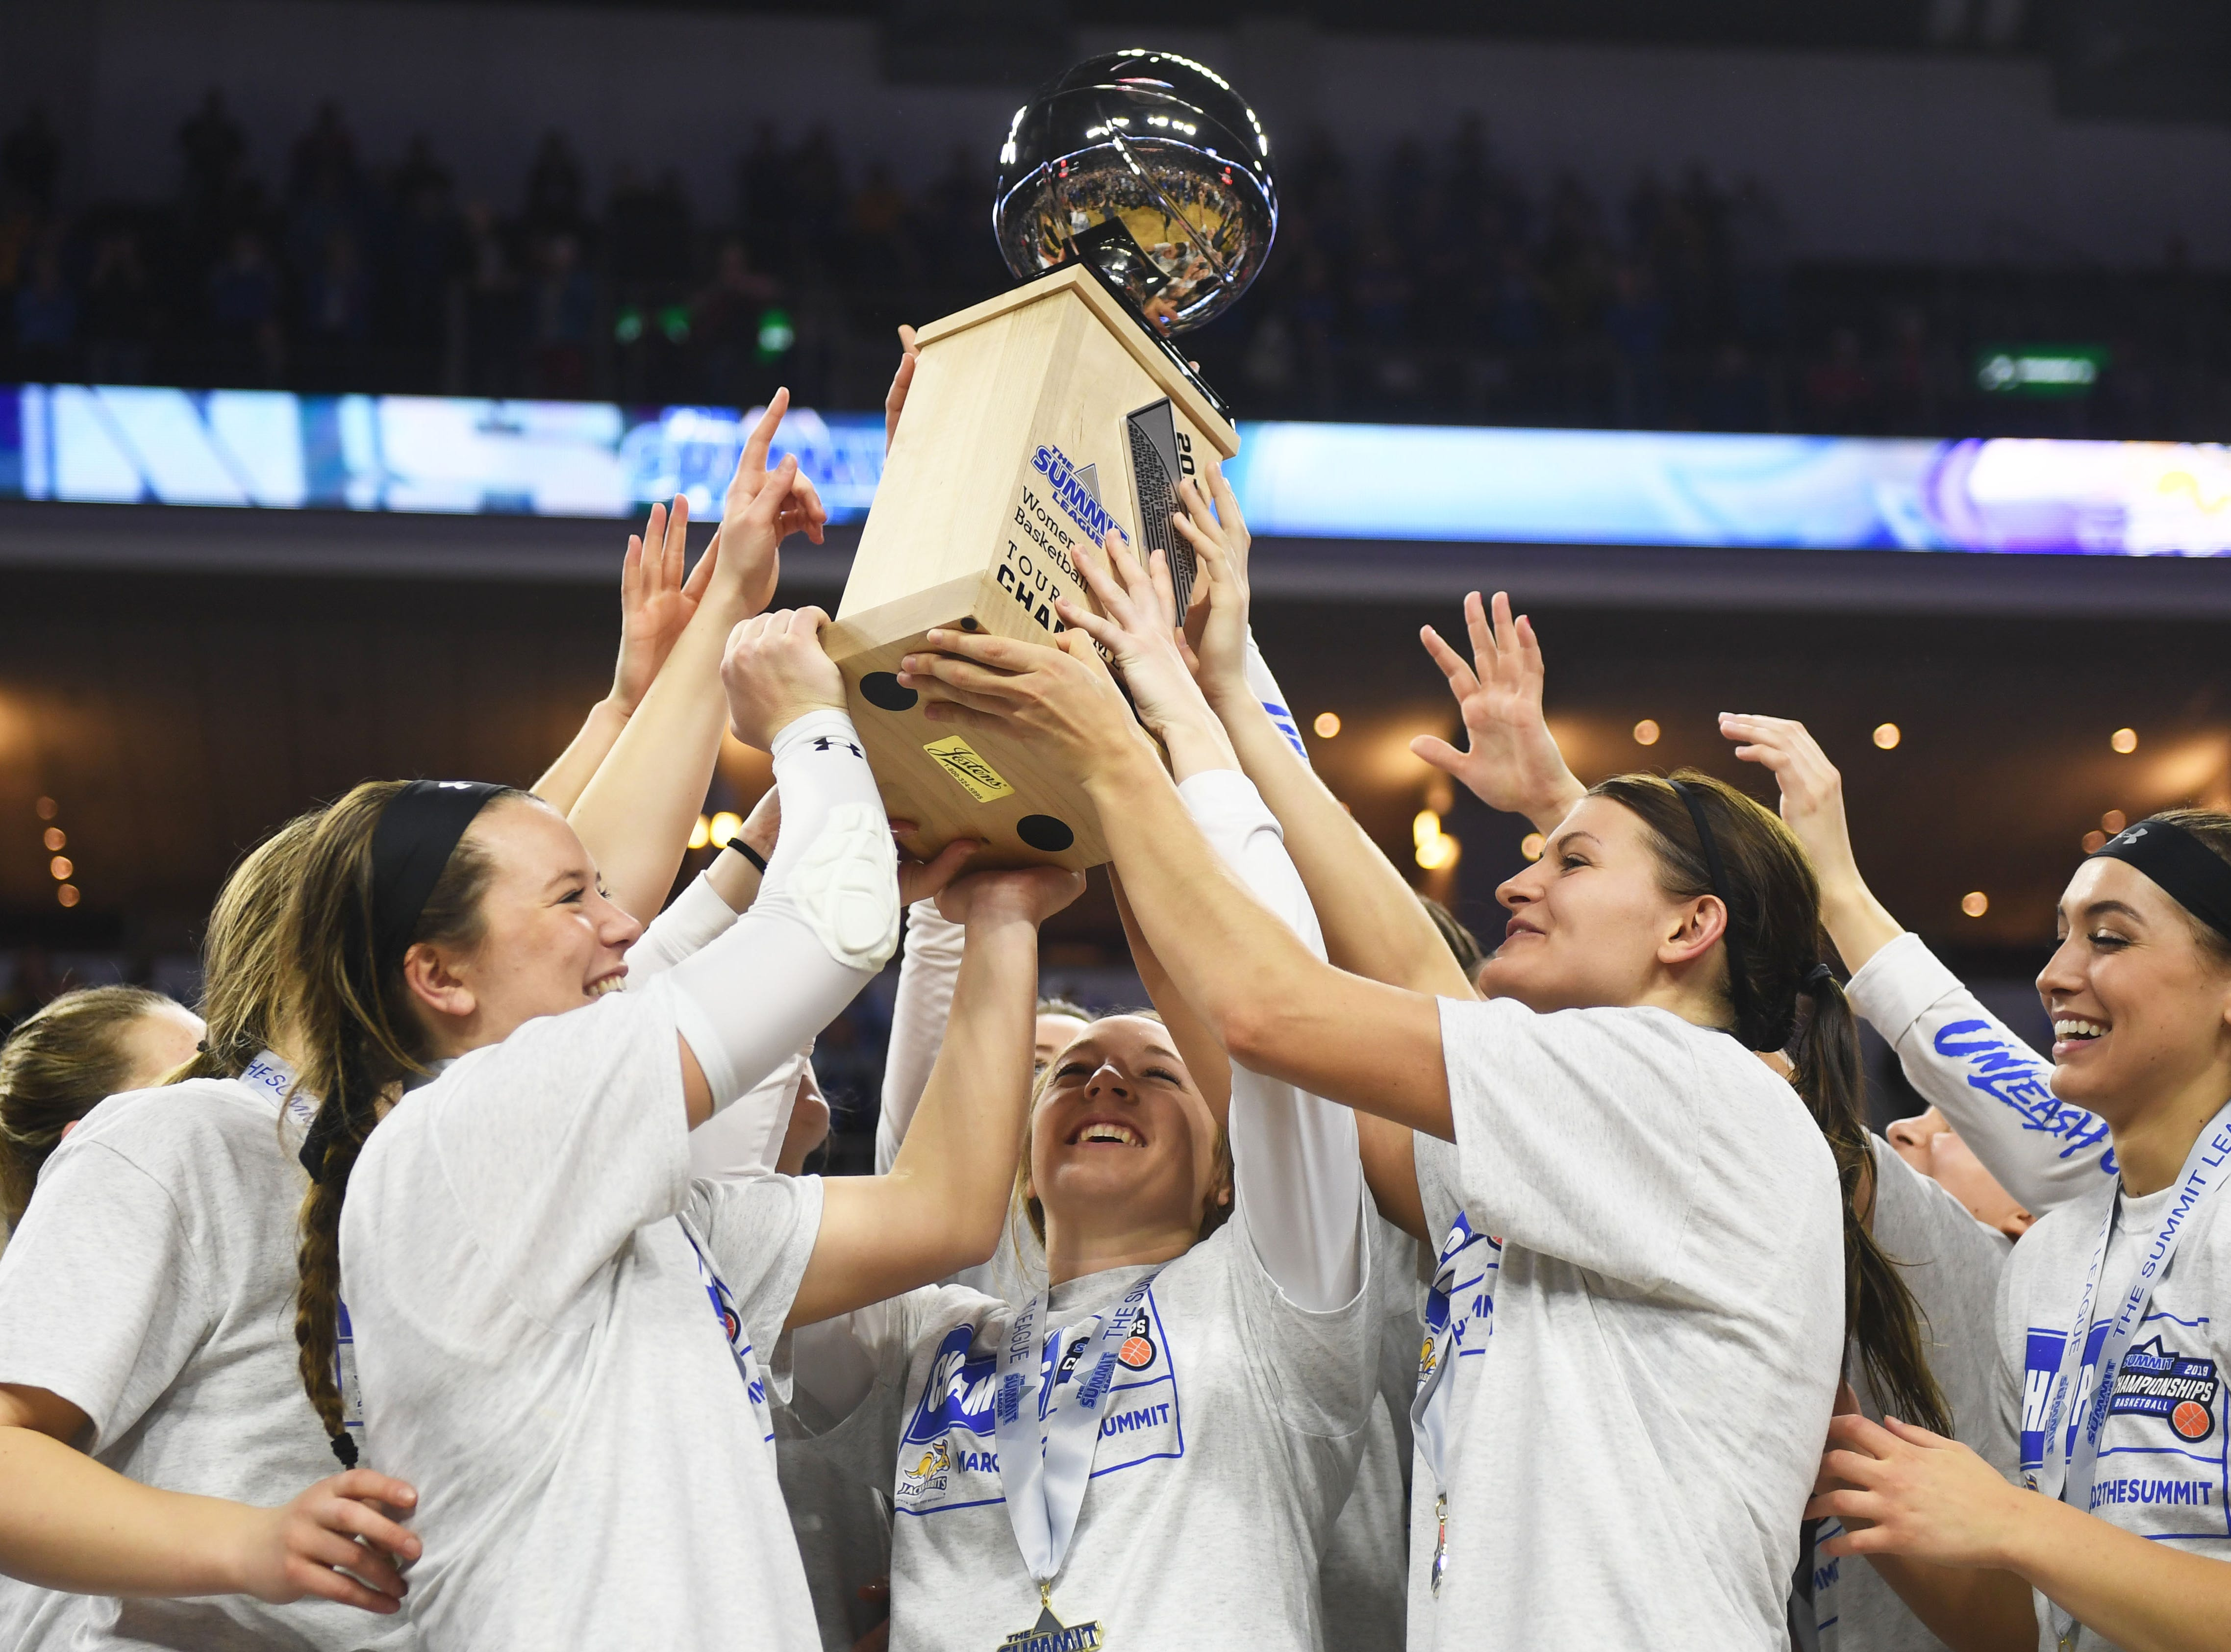 SDSU celebrates their win against USD Tuesday, March 12, in the Summit League women's championship at the Denny Sanford Premier Center in Sioux Falls. SDSU won 83-71 against USD.